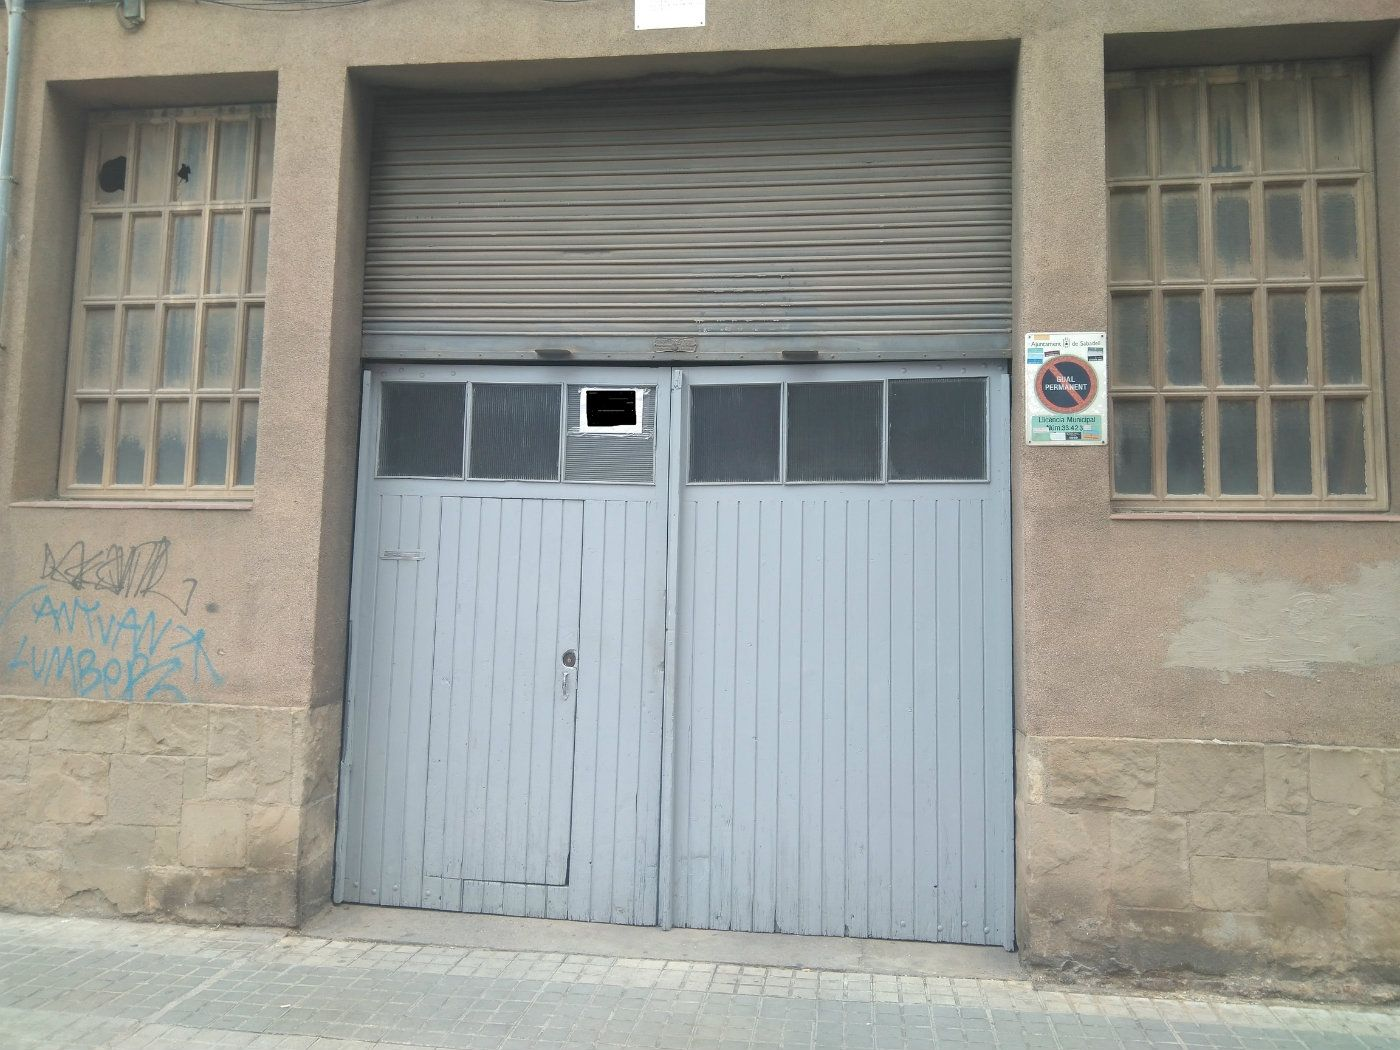 Nau industrial  Carrer calders. Almacén / parking